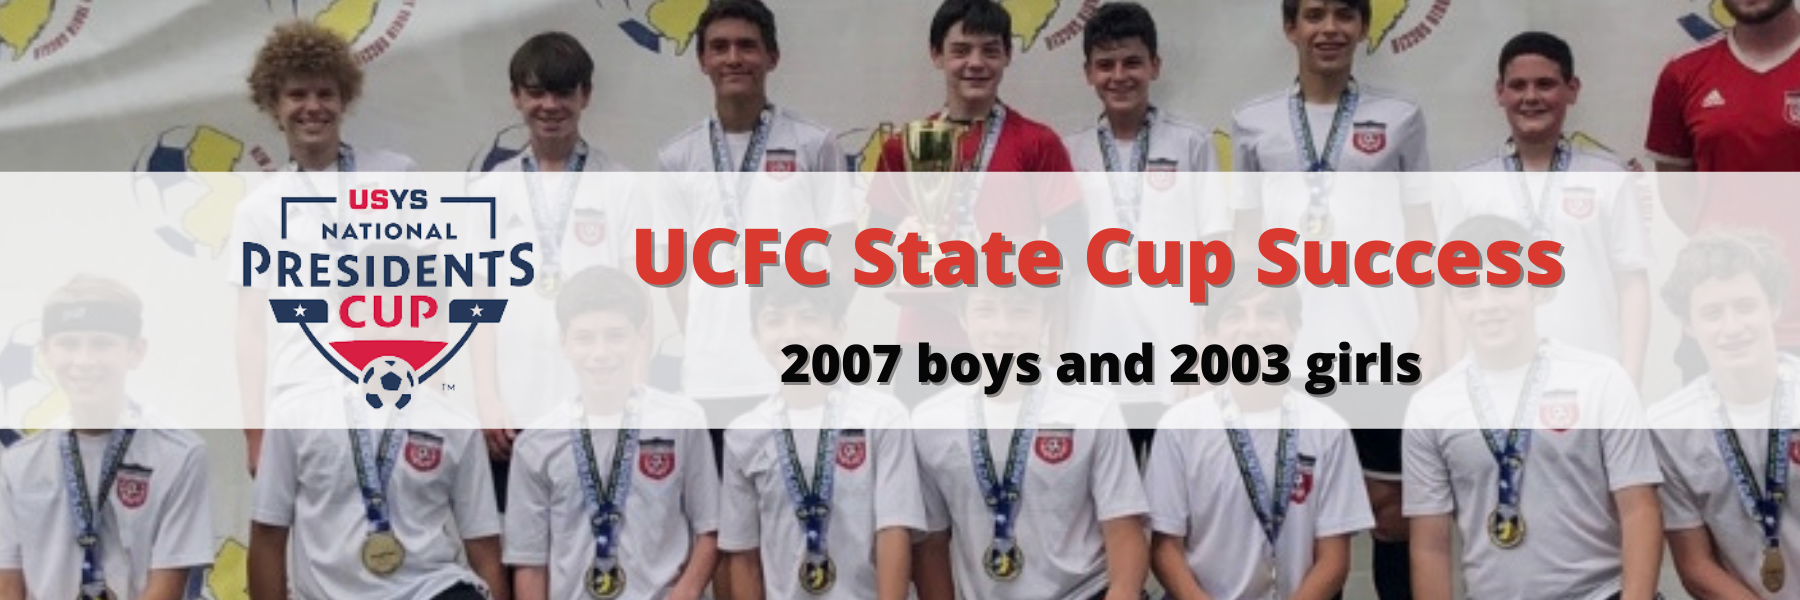 UCFC State Cup Success